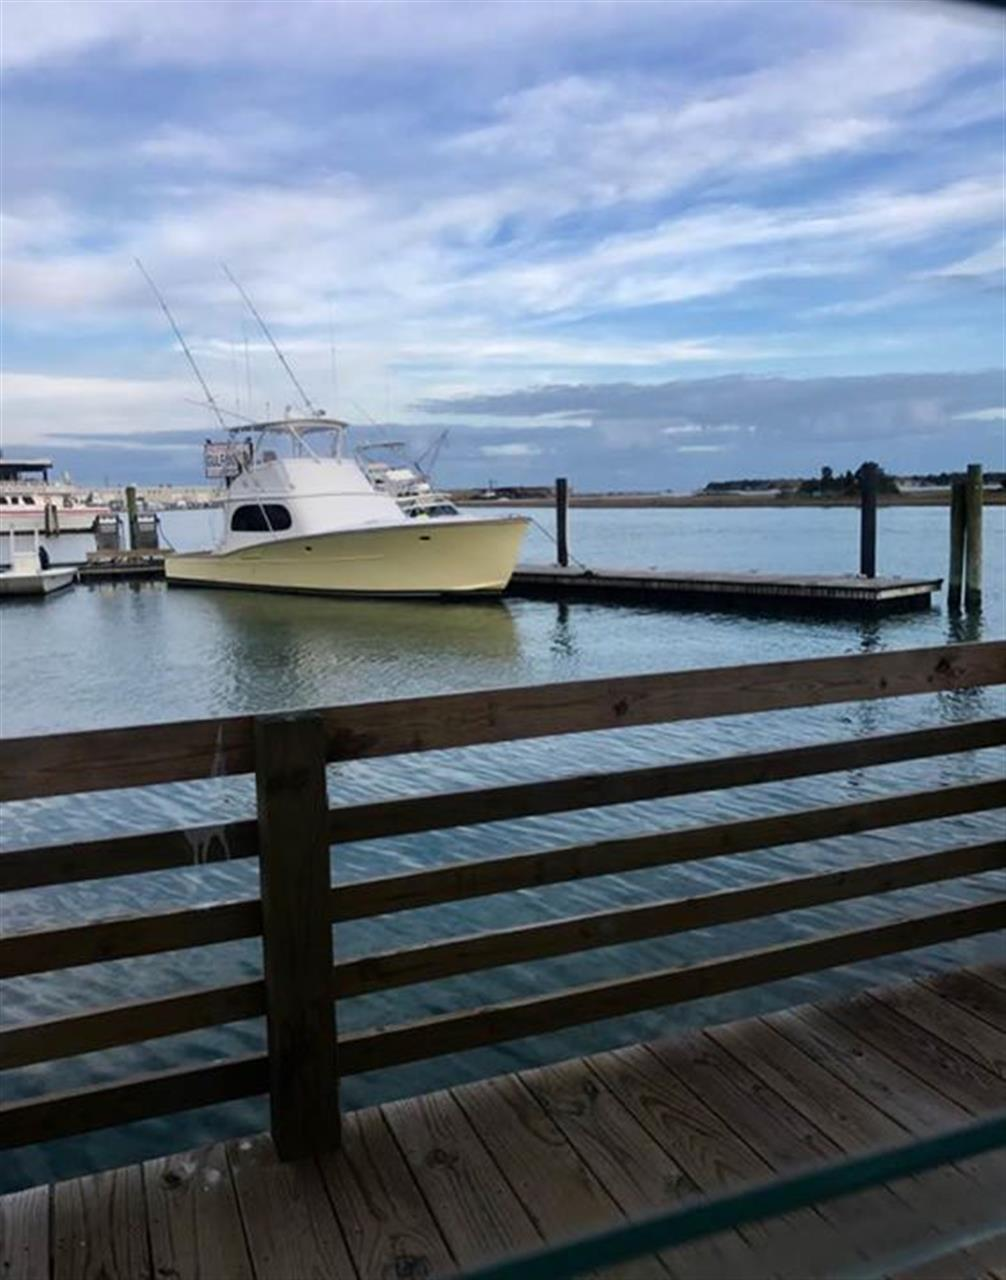 Dinner on the waterfront, Morehead City, NC